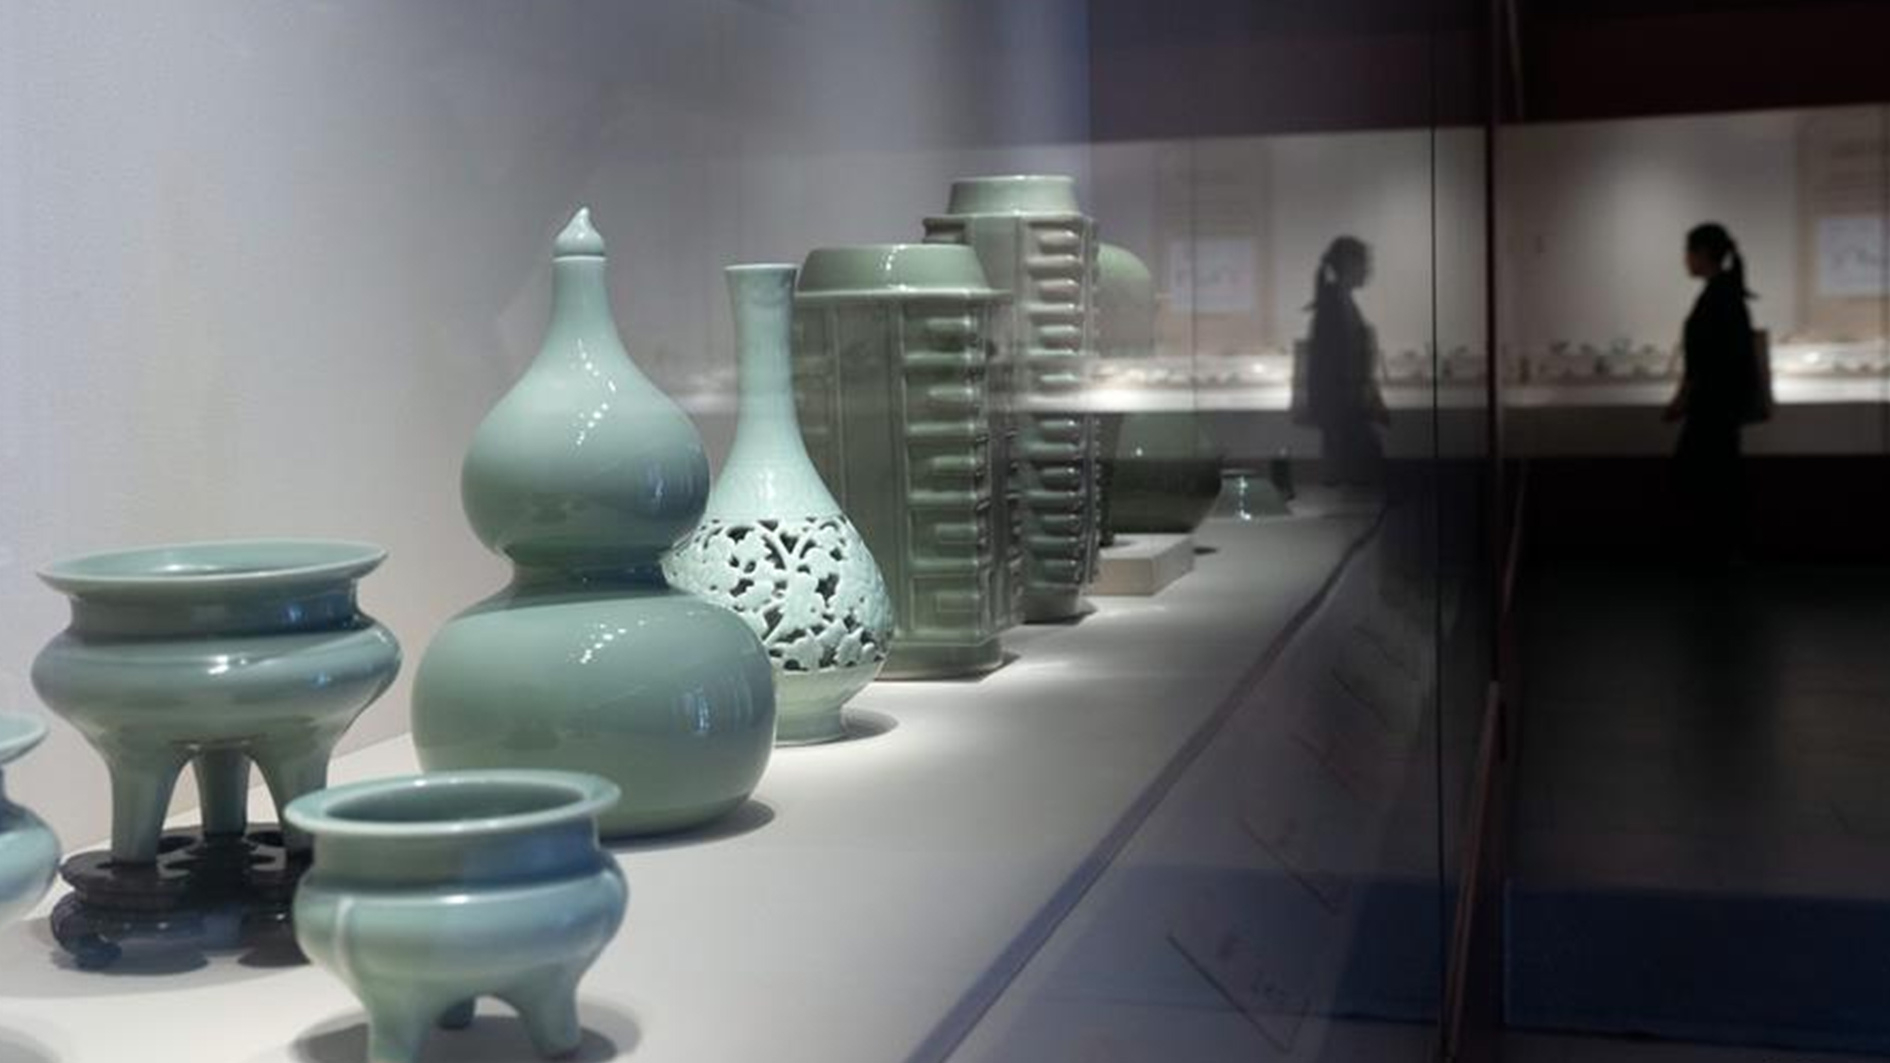 Porcelain unearthed in the Song Dynasty Celadon kiln vase